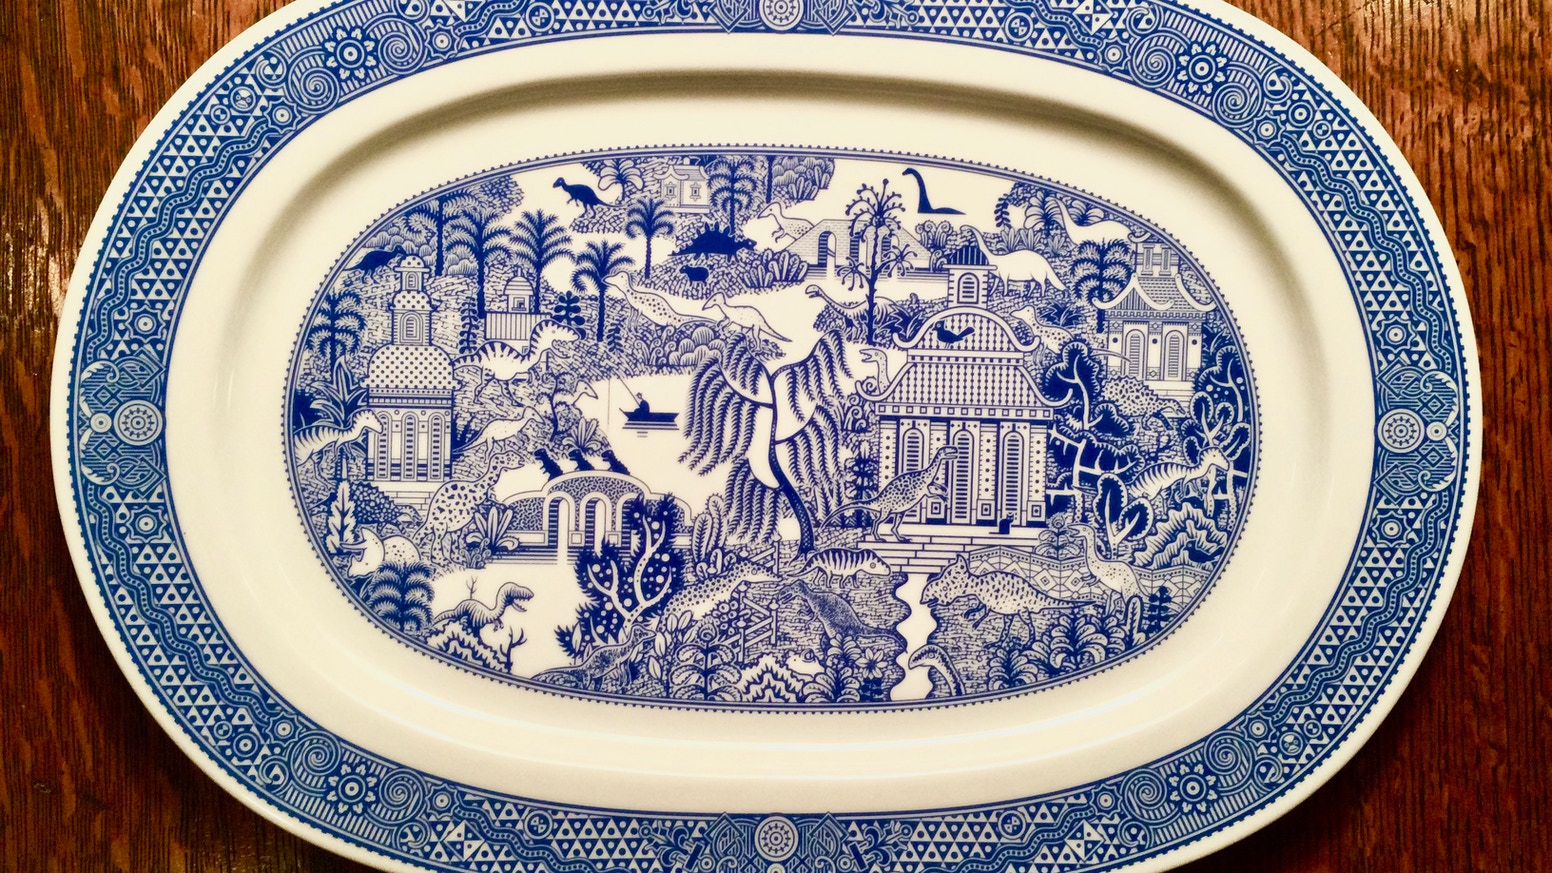 A host of hungry dinosaurs enhance this porcelain platter.